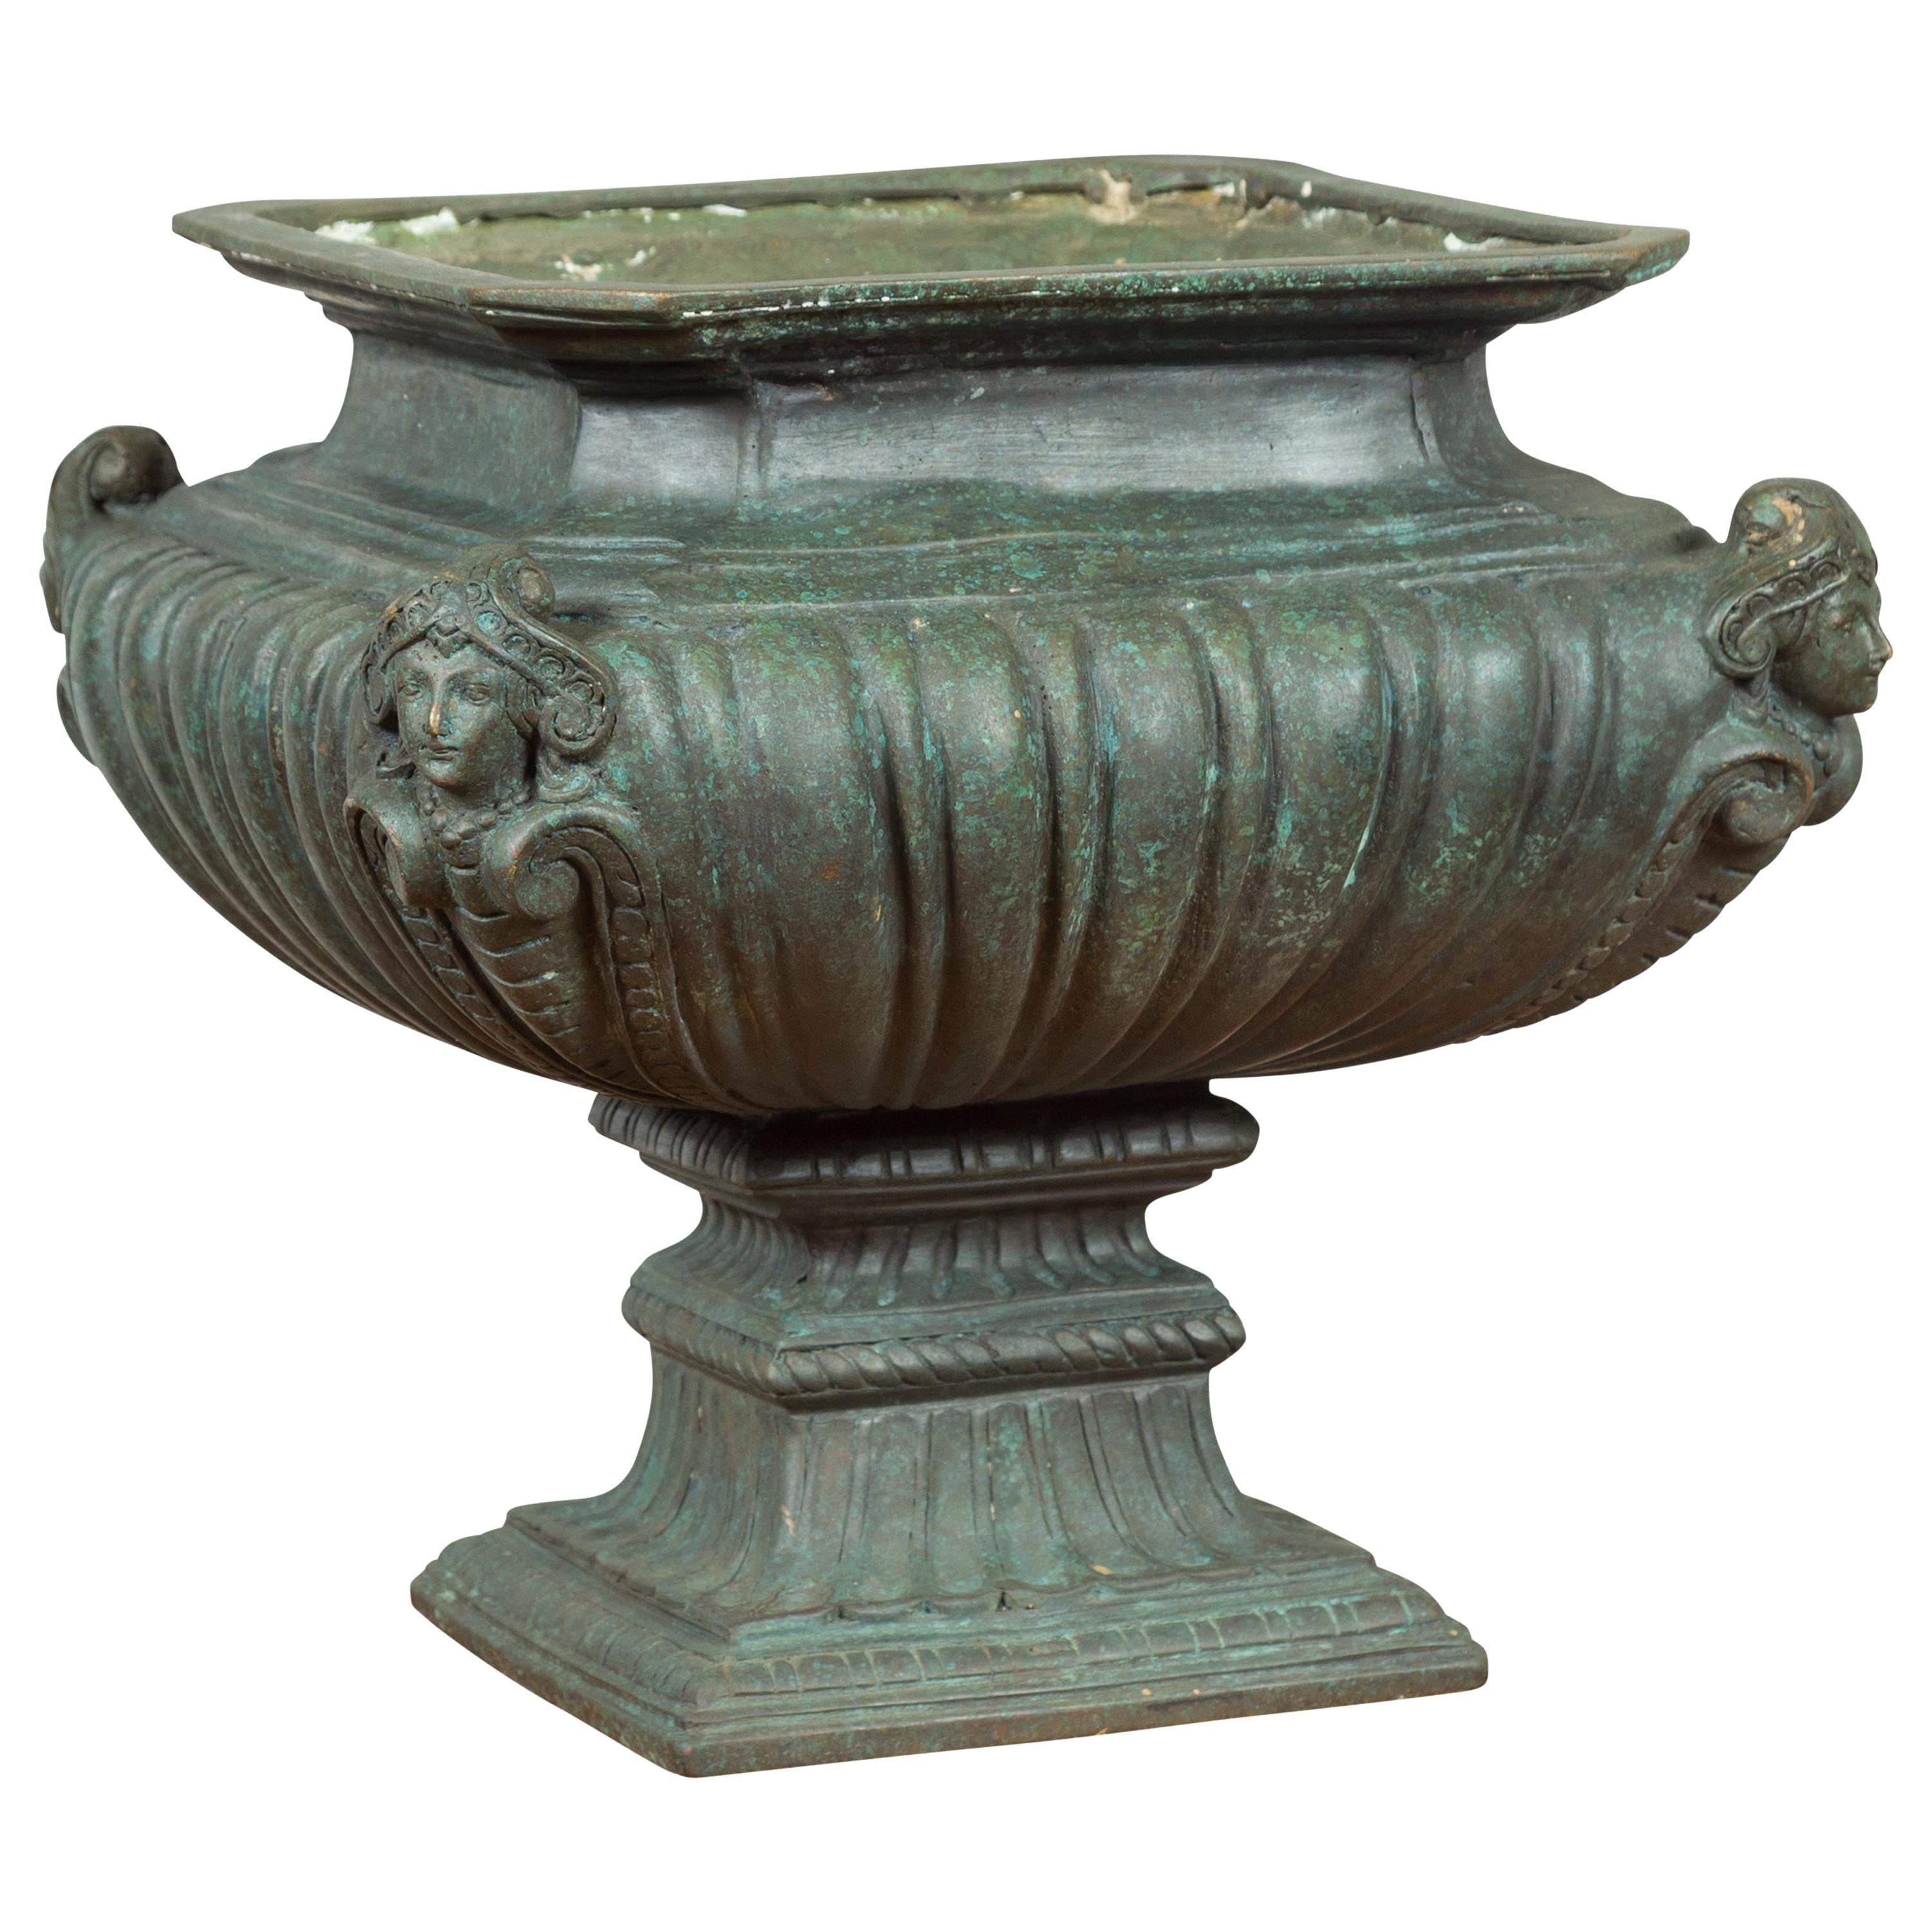 Contemporary Cast Bronze Planter with Figures, Gadroon Motifs and Verde Patina